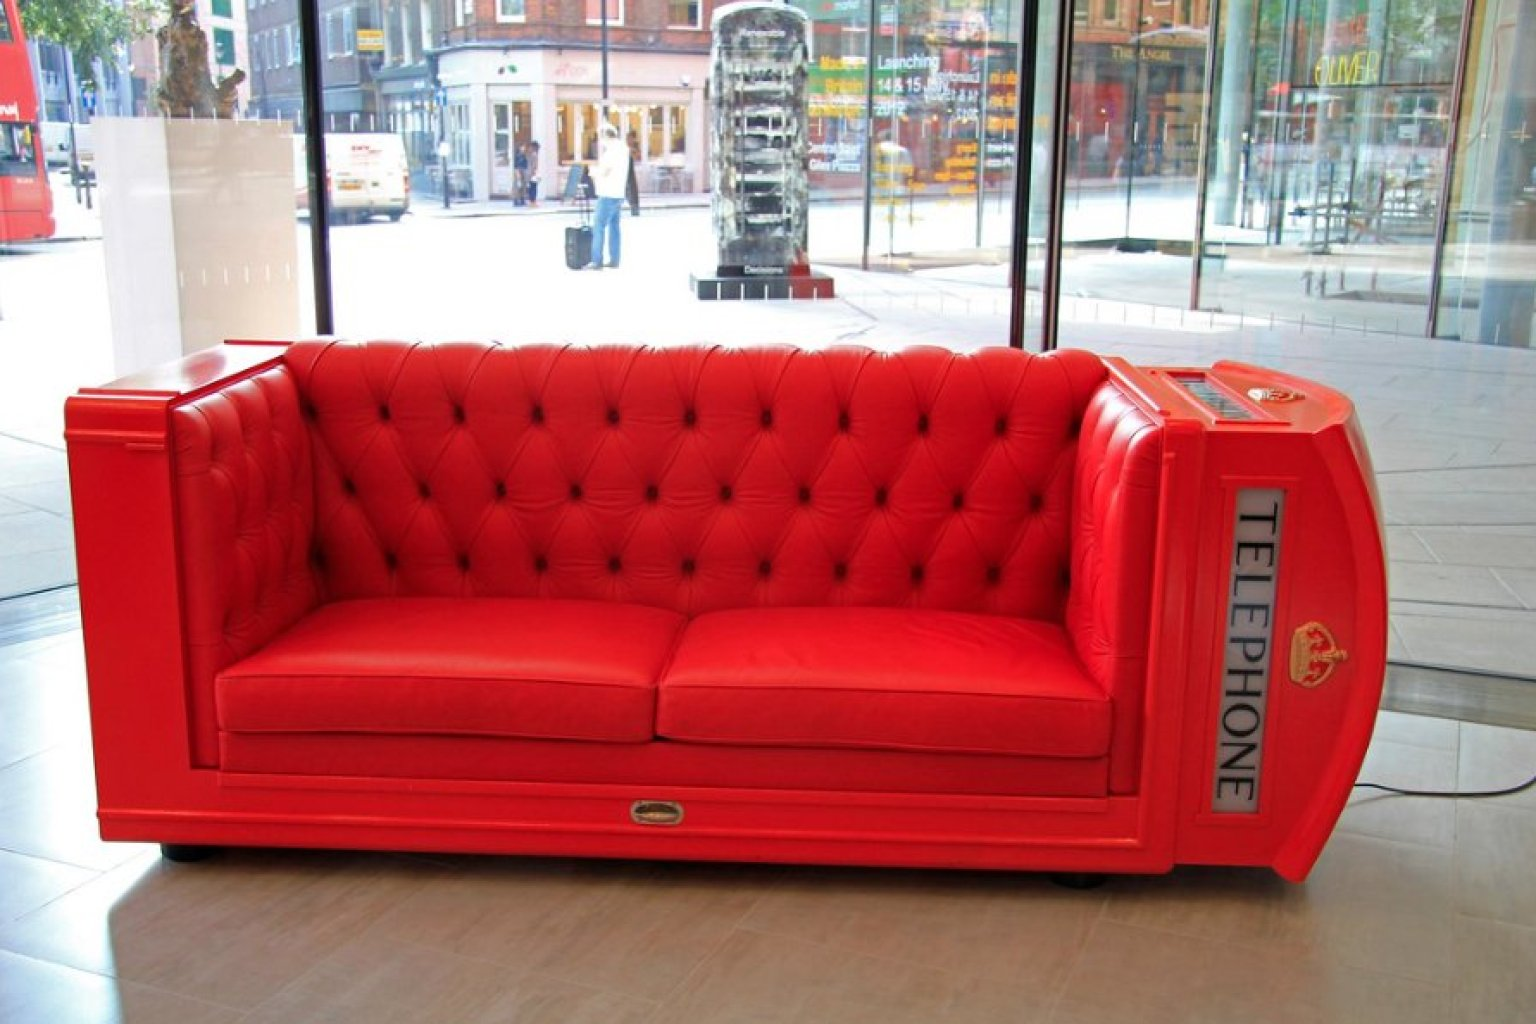 Shipping Furniture Across Canada 11 Extreme Sofas That Will Make You Rethink Your Trusty